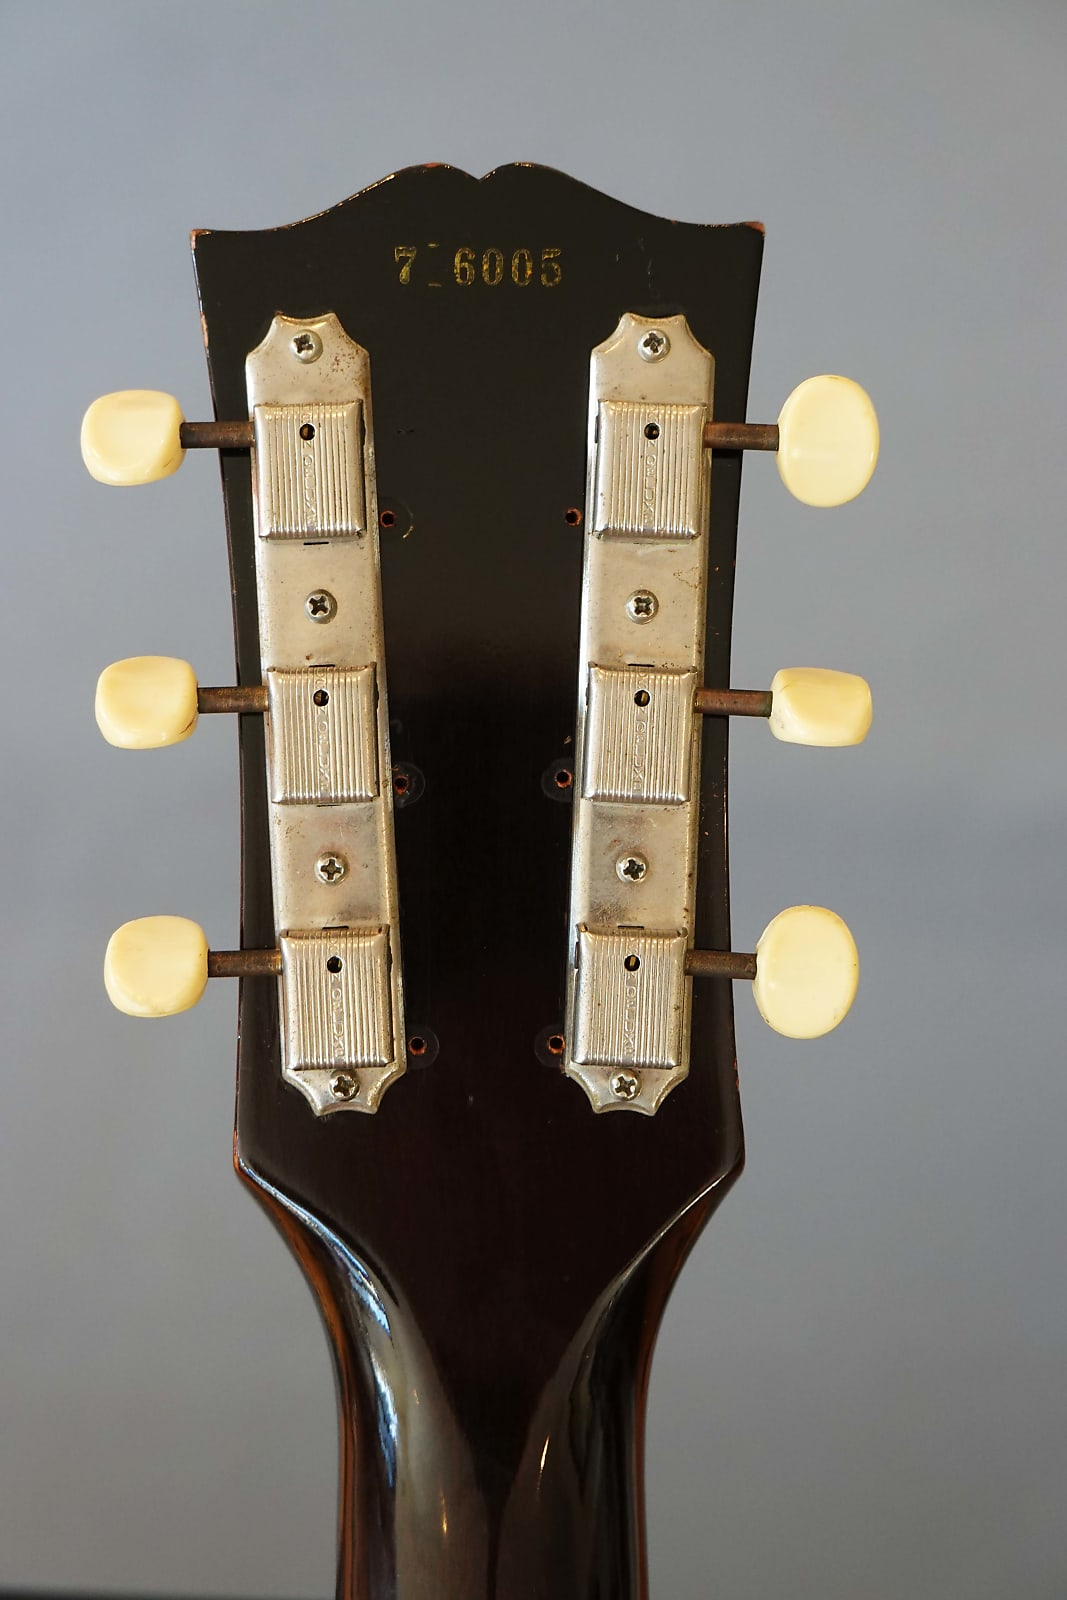 Meccaniche 3 on a plate della Les Paul Junior (Courtesy of Vintage Guitar Buyers)